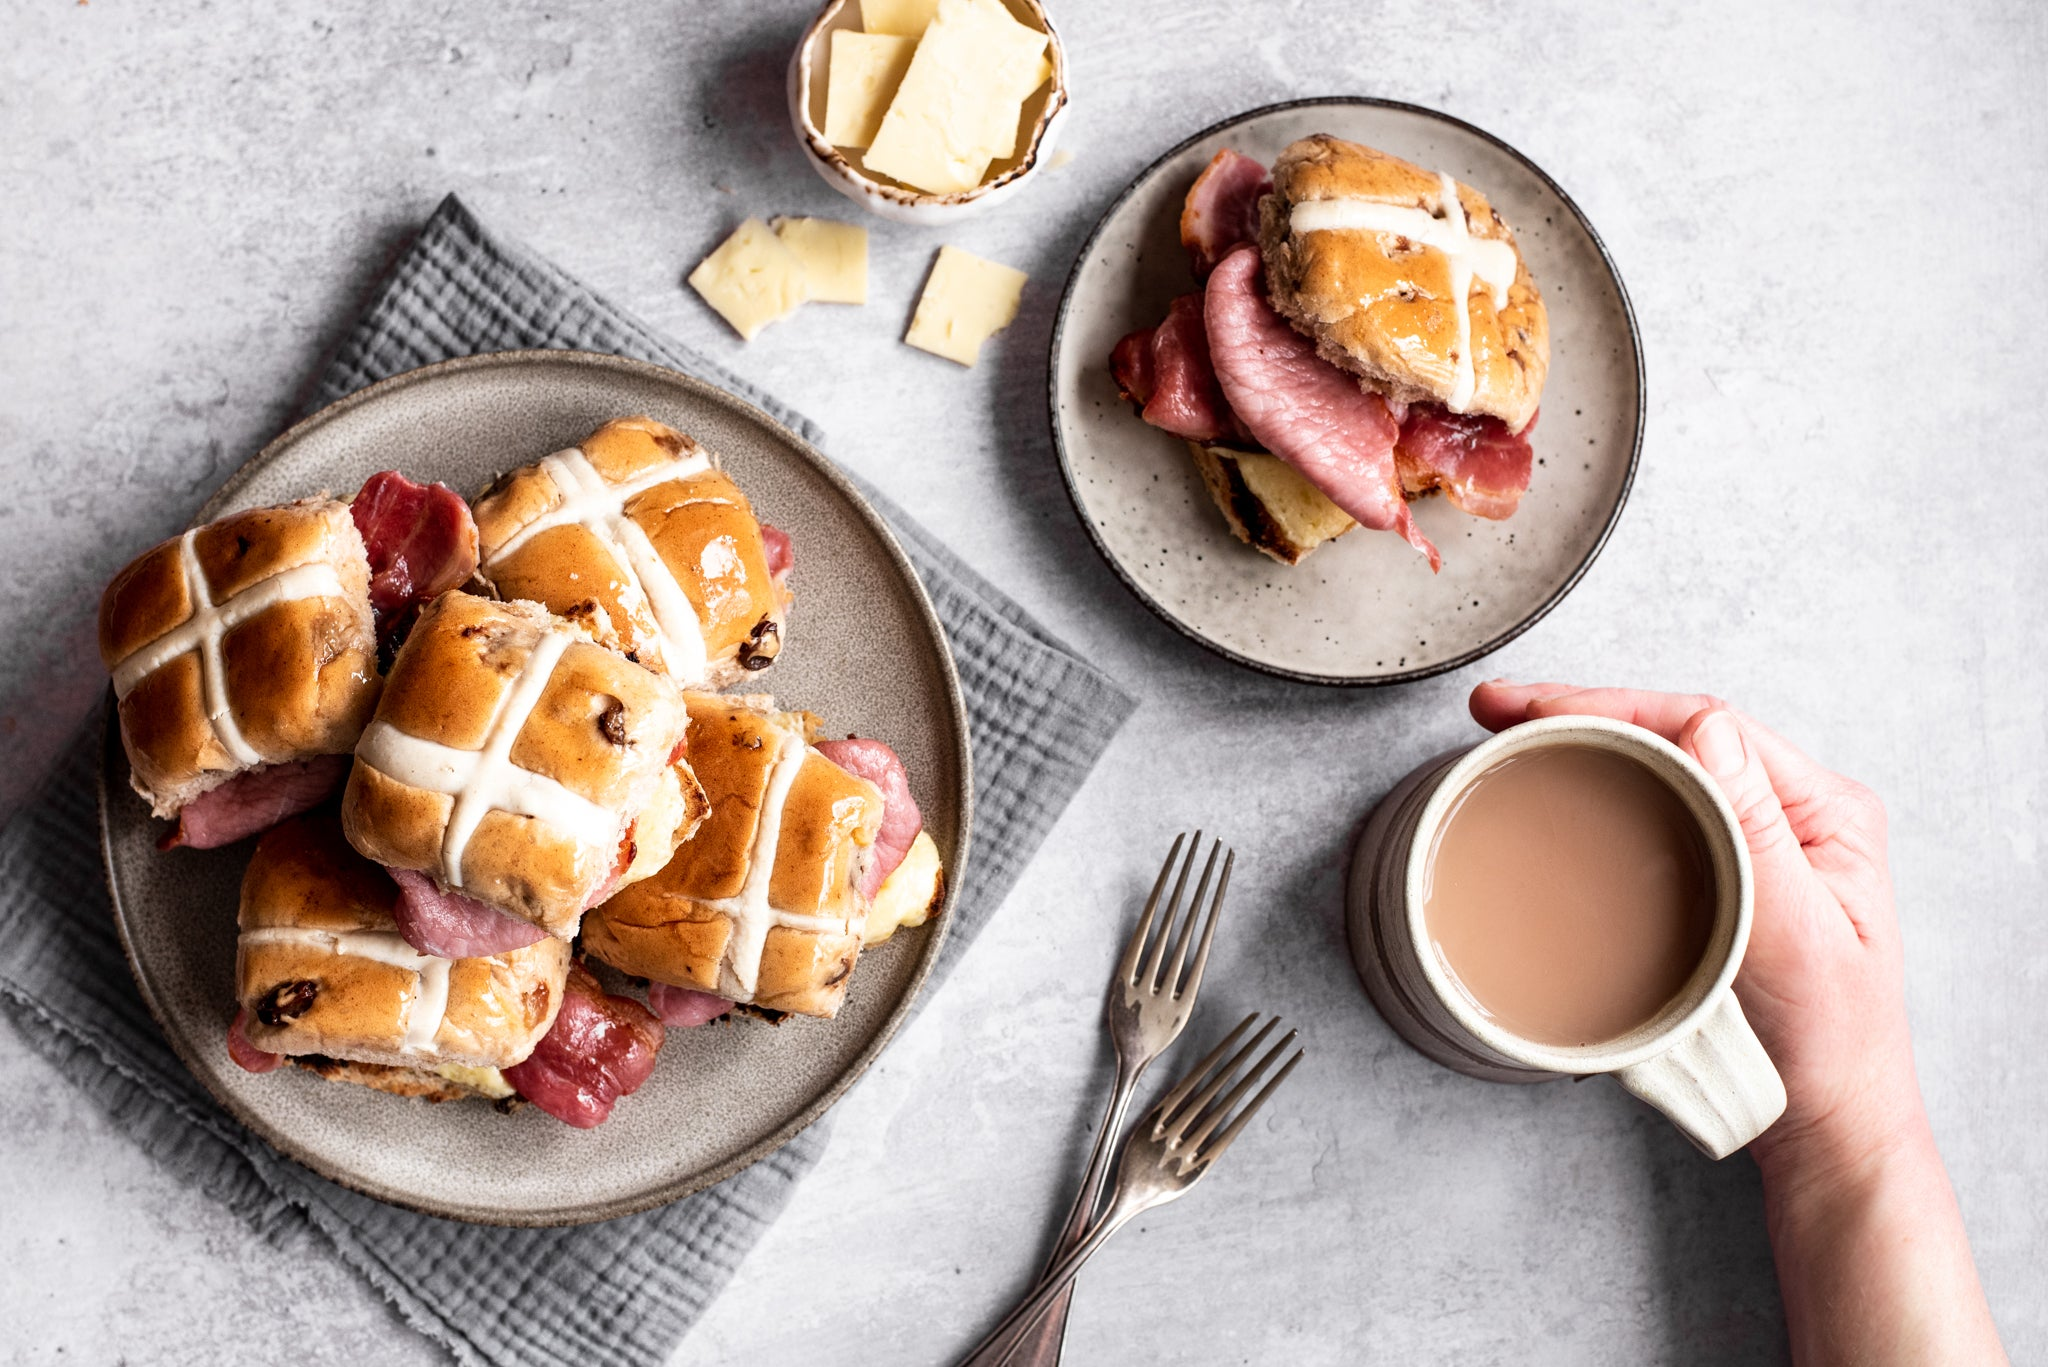 Plate of hot cross buns stacked on top of each other. Plate with hot cross bun and bacon. Cup of tea and hand. Two forks